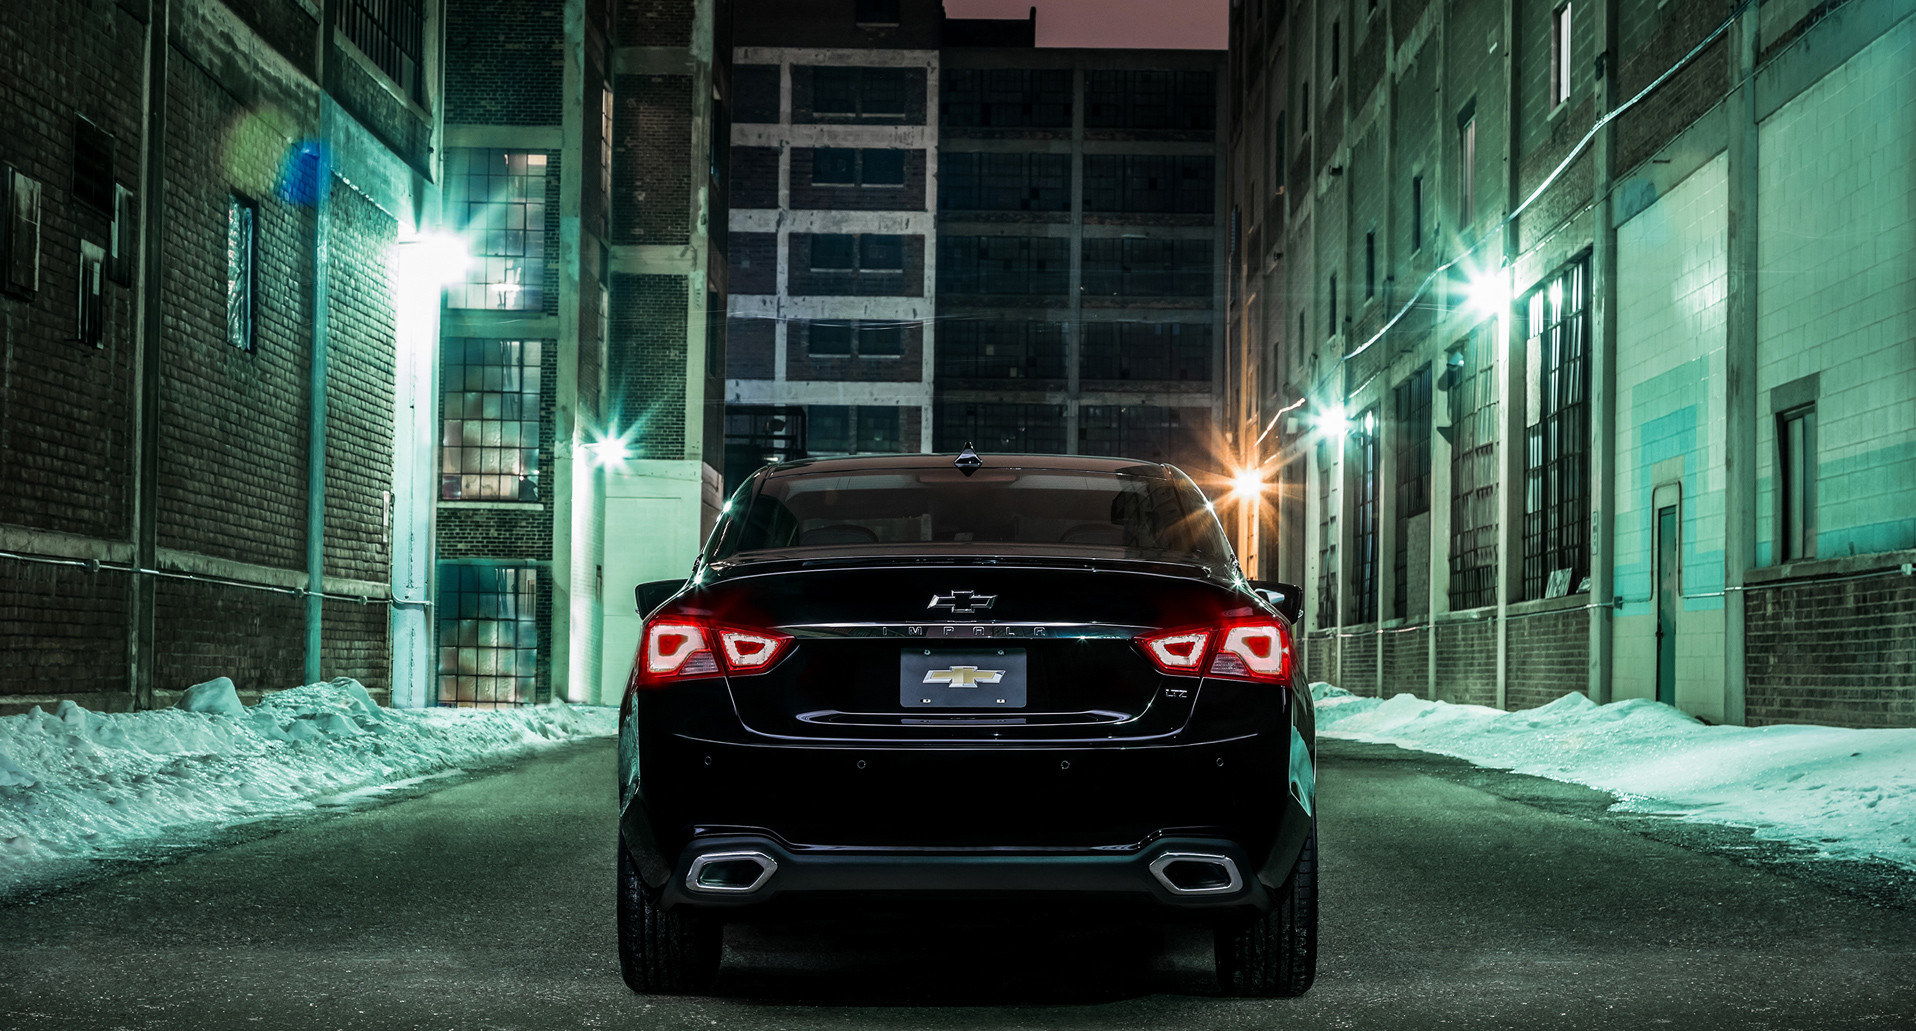 2016 Chevrolet Impala Midnight Edition Rear Photo (View 11 of 11)